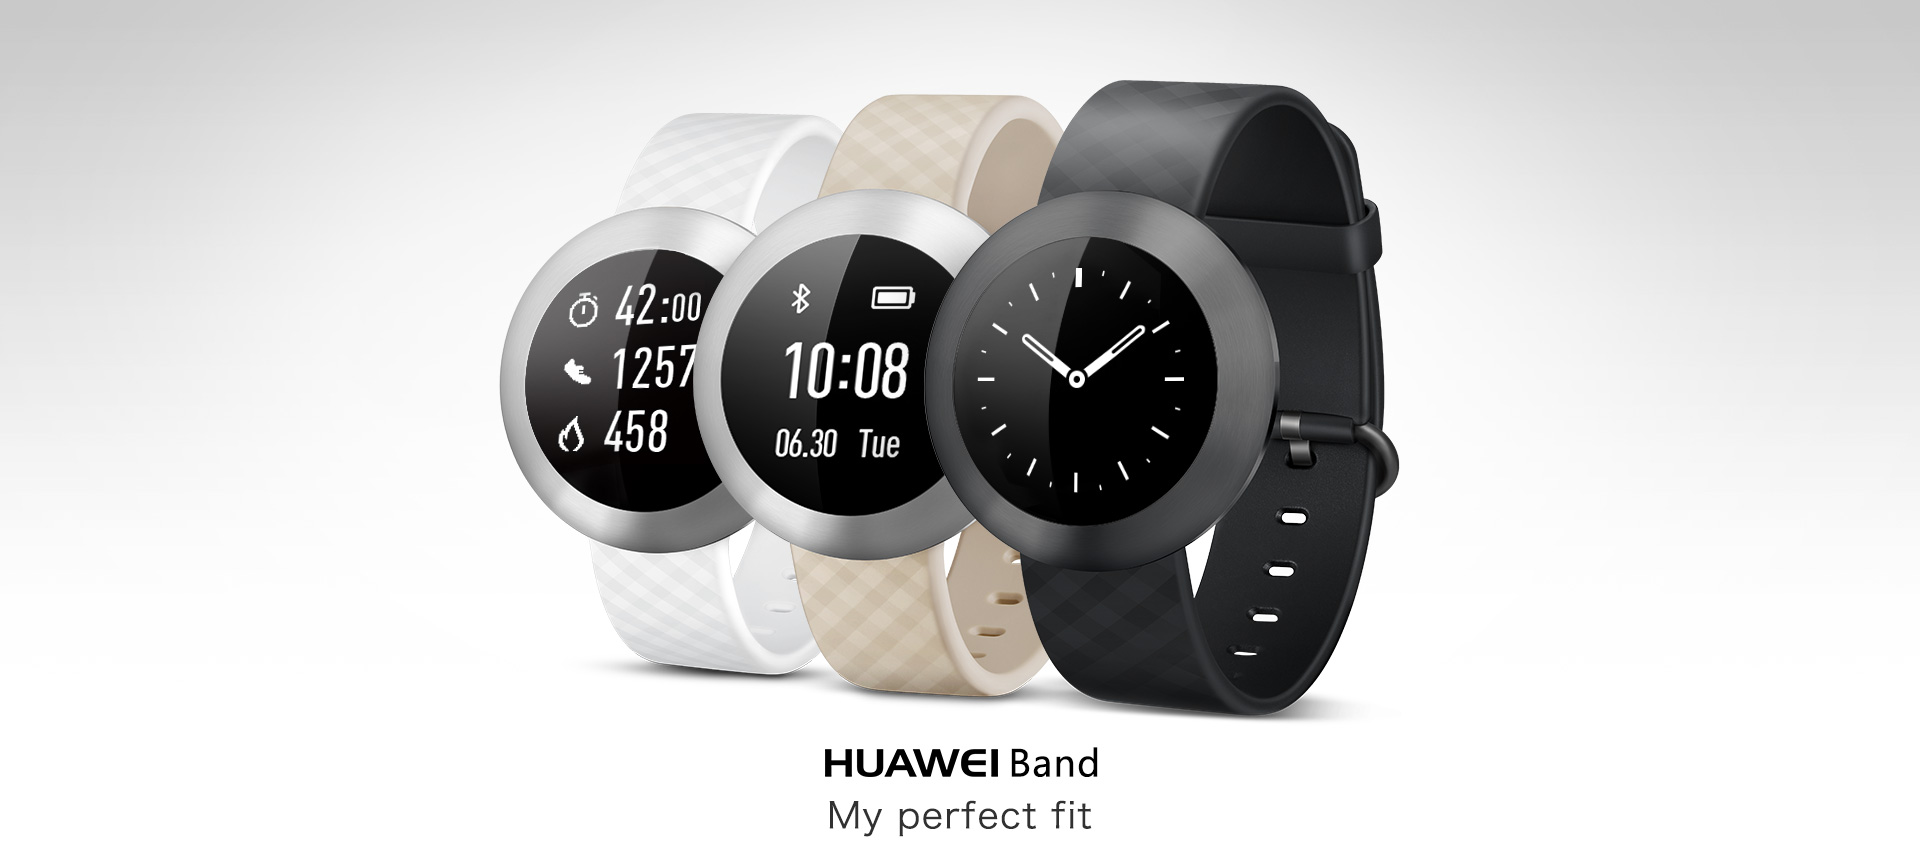 HUAWEI Band Wearables | HUAWEI Philippines